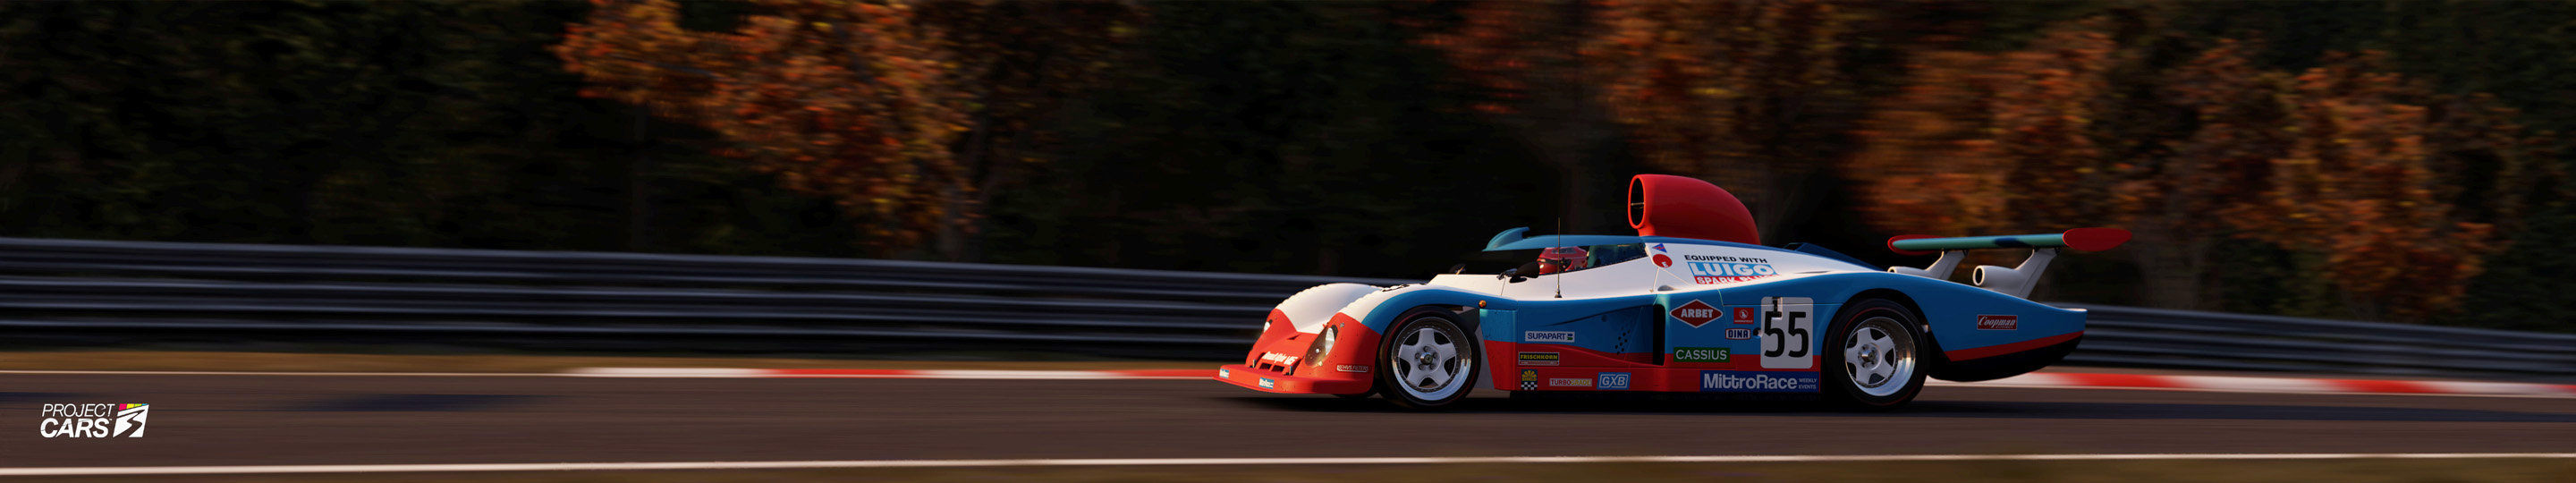 0 PROJECT CARS 3 ALPINE A442B at NORDSCHLEIFE copy.jpg